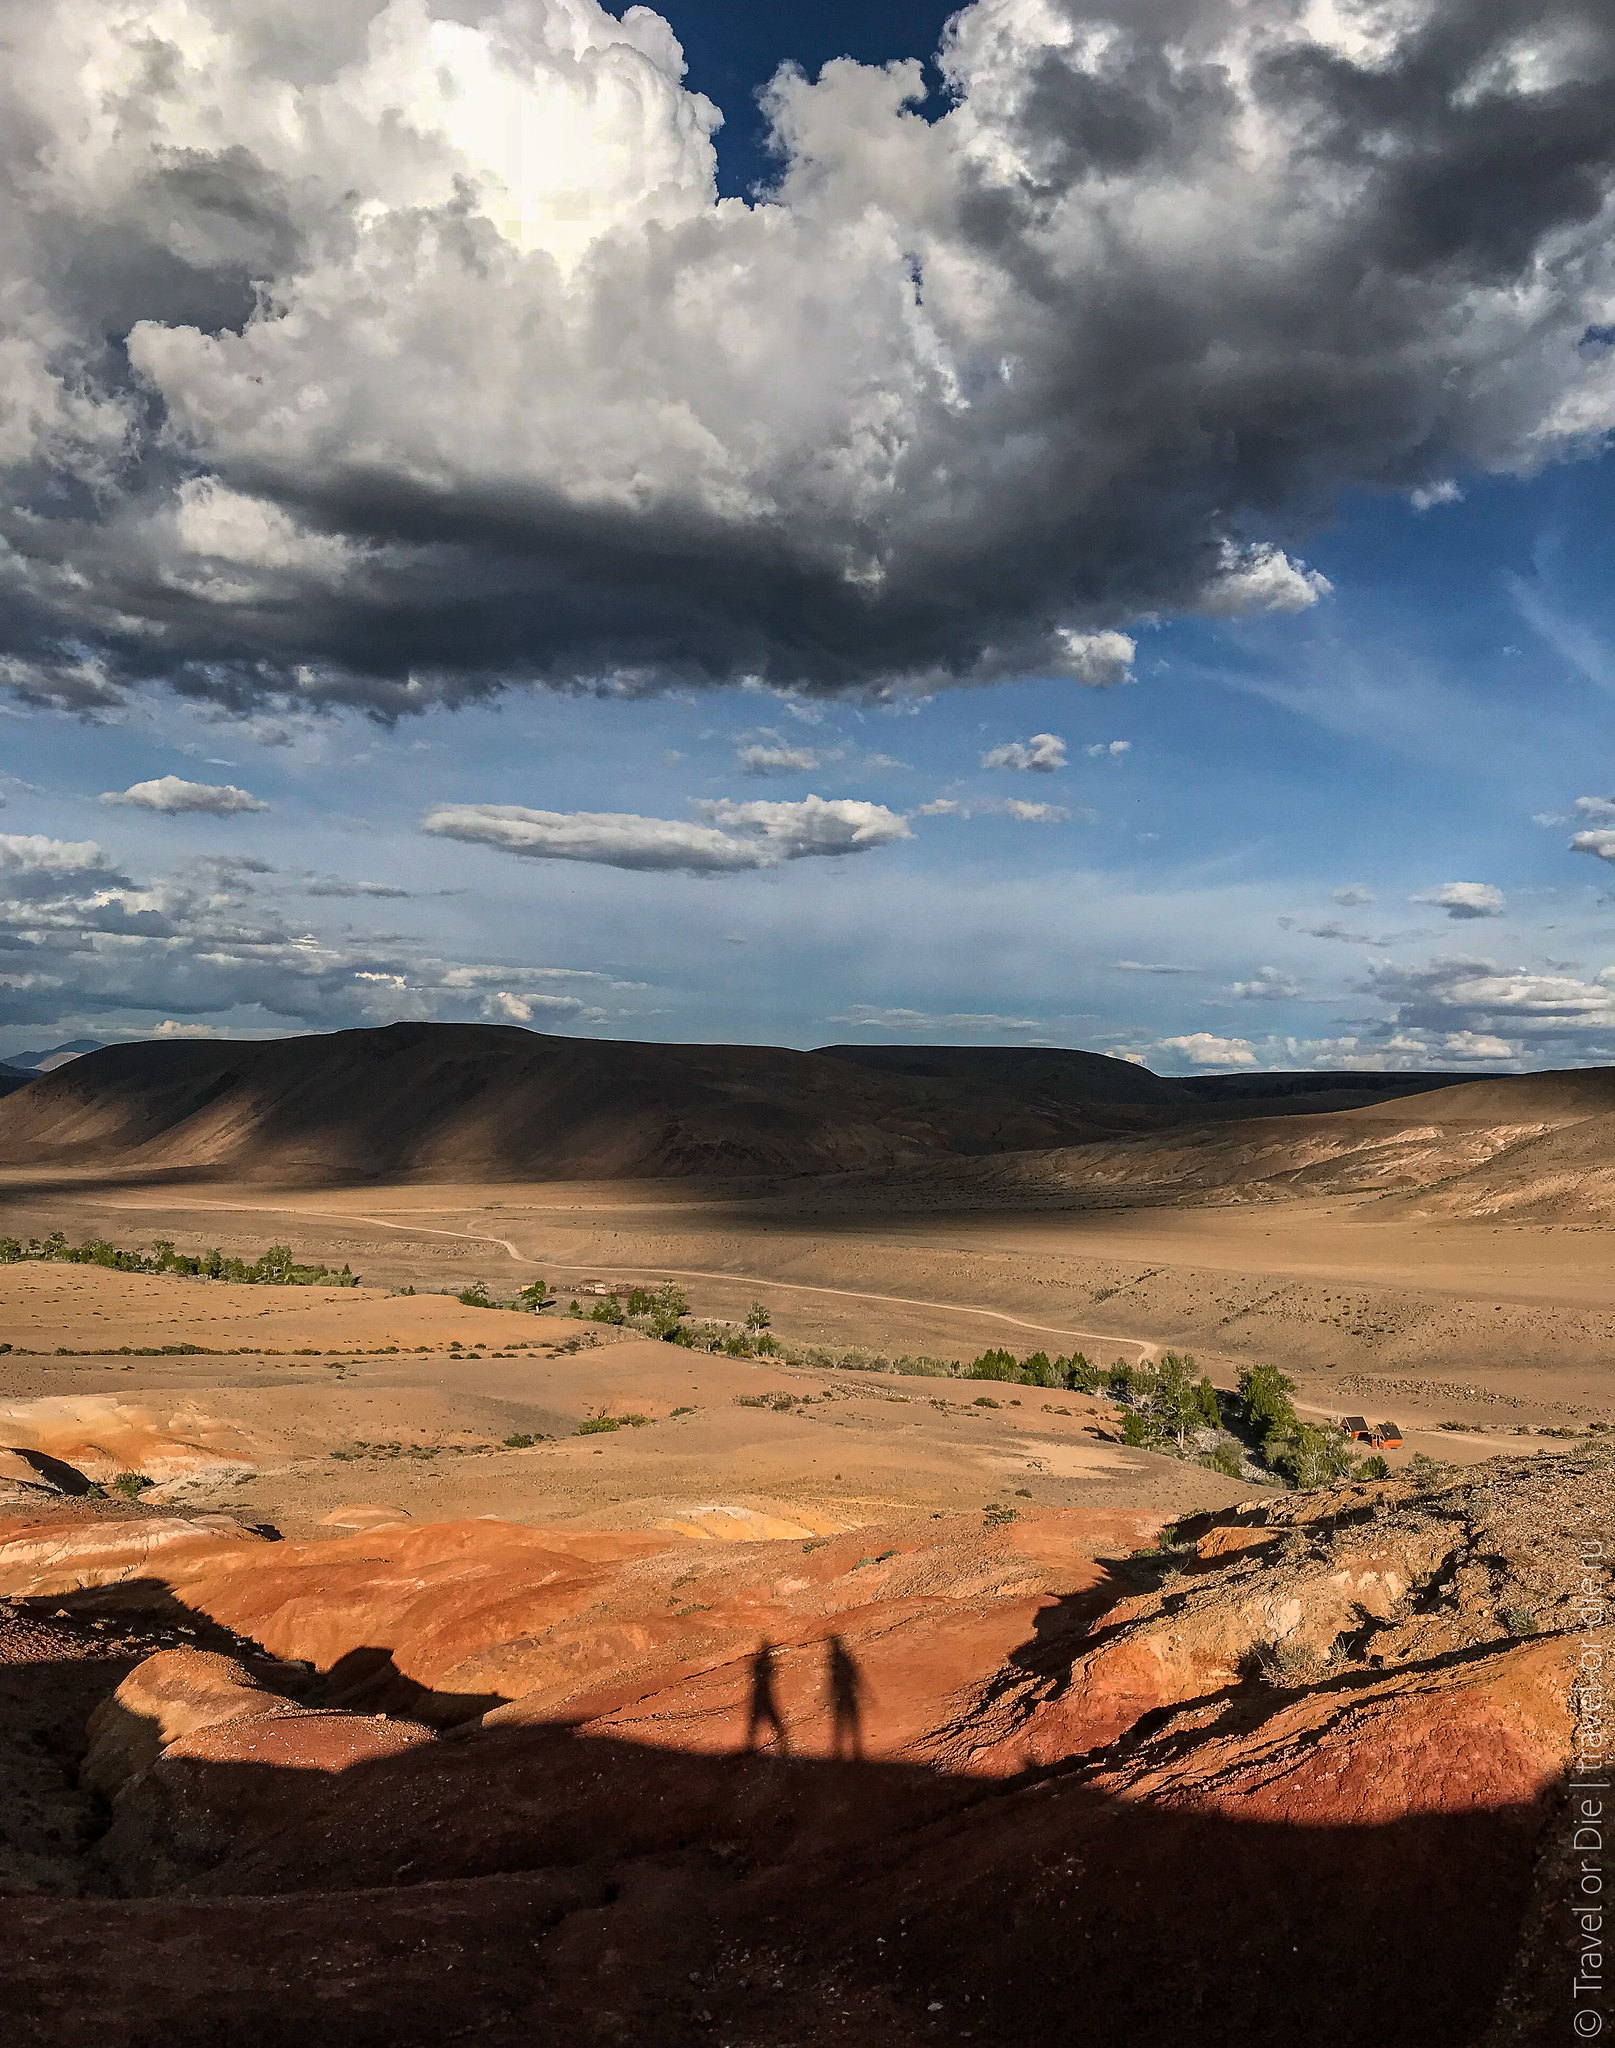 Mars-Kyzyl-Chin-Valley-Altay-iphone-2373